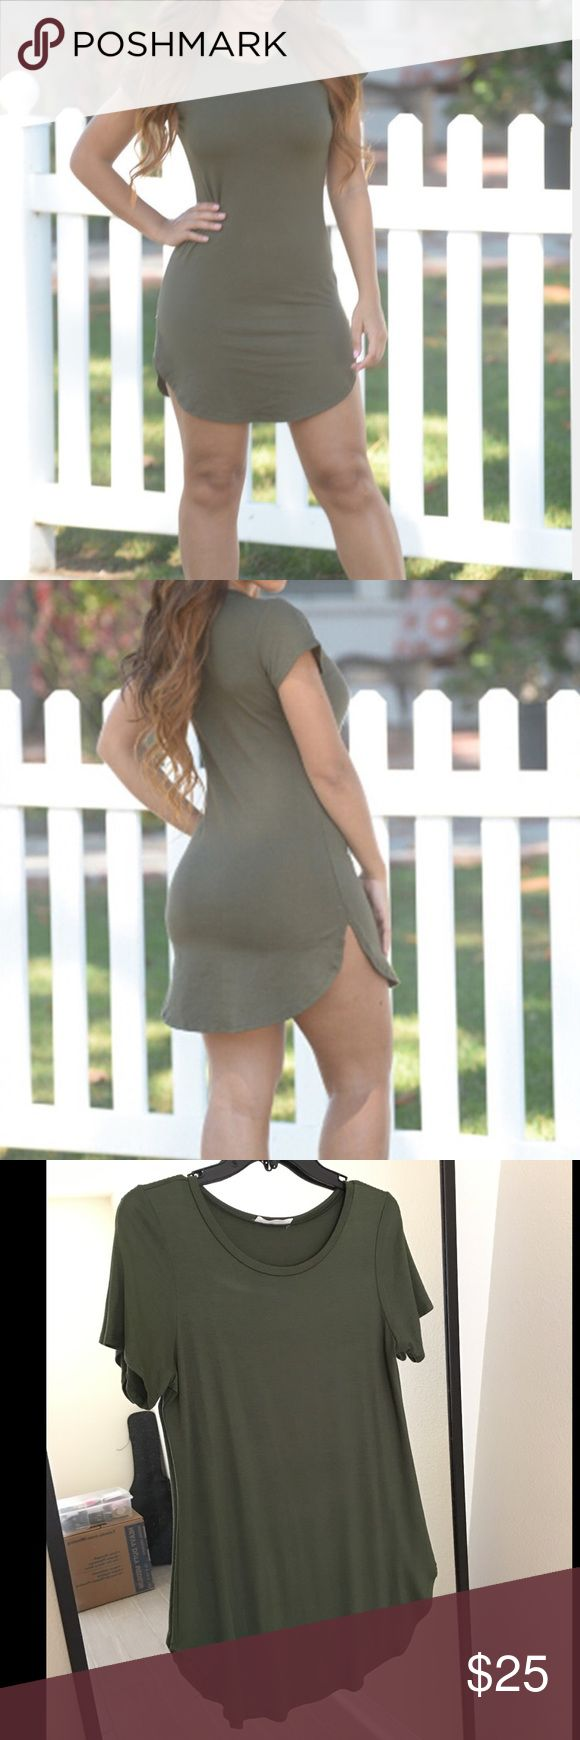 🤑 Olive Green Tunic Dress 🤑 Olive green tunic dress. Brand new. Never worn. Fashion Nova Dresses